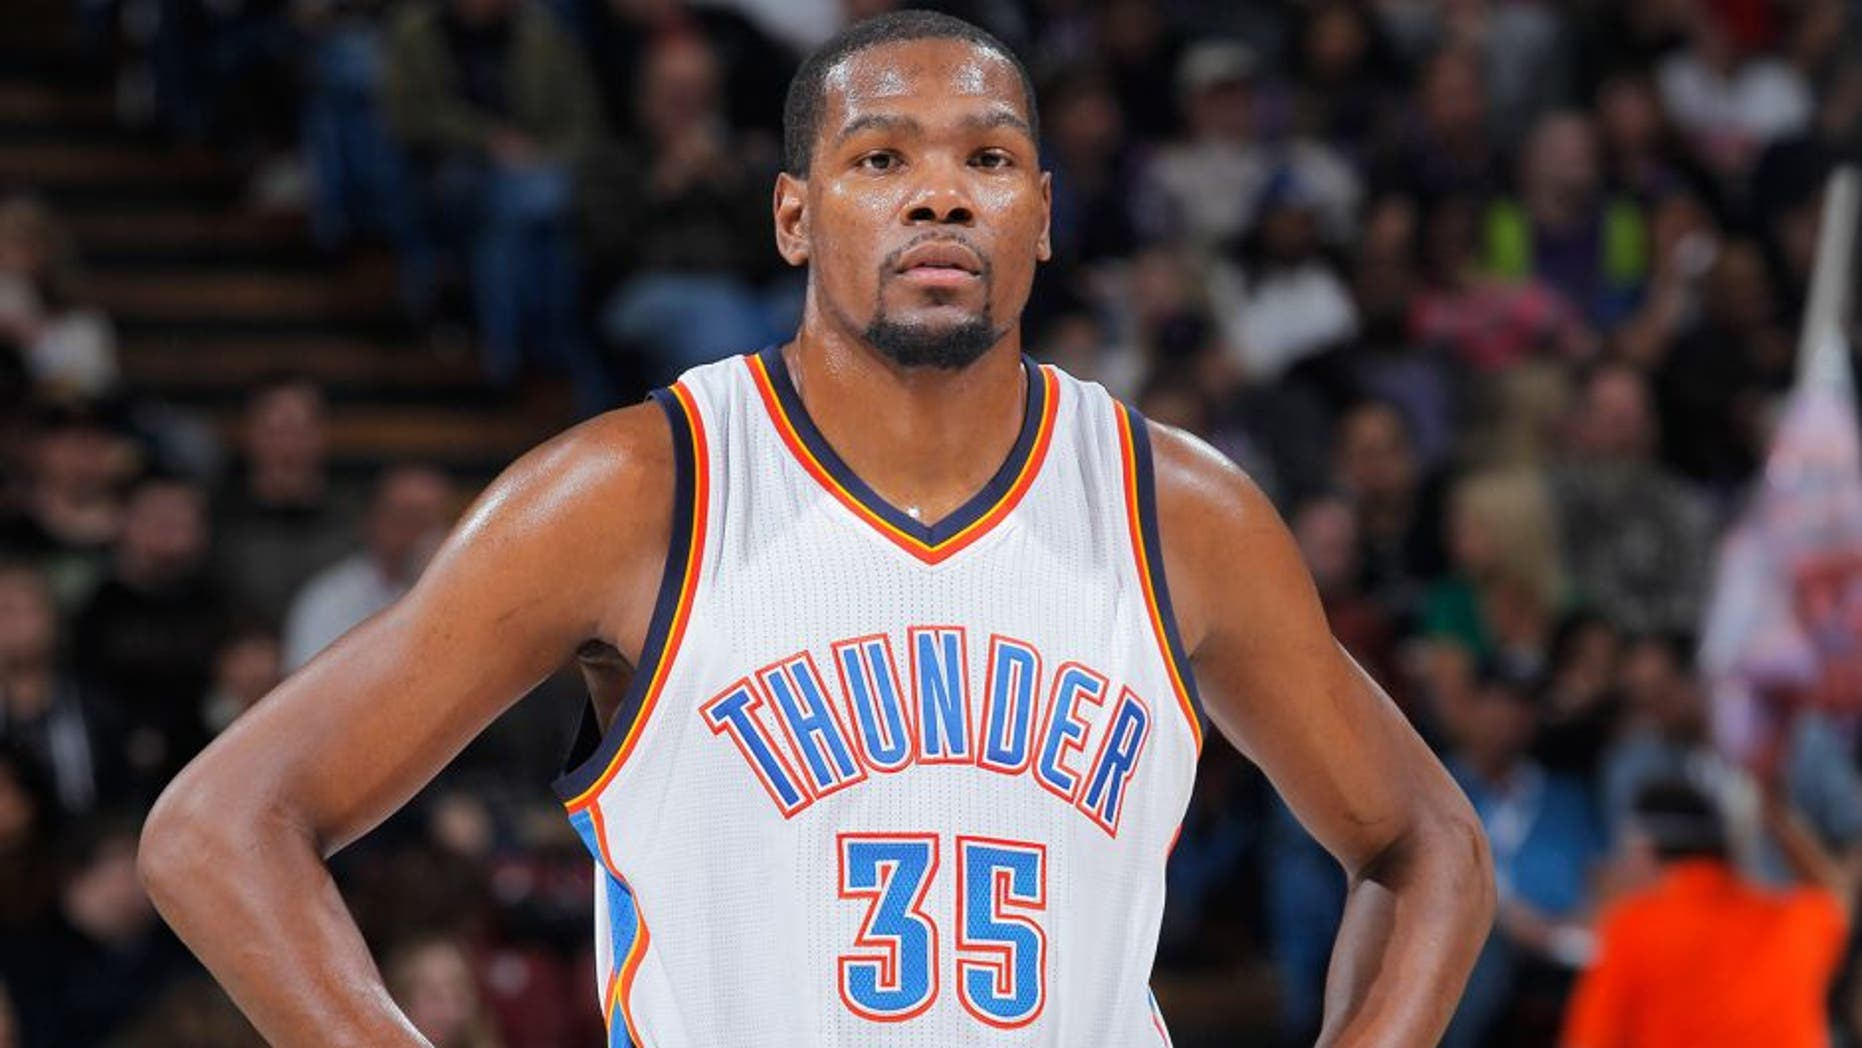 SACRAMENTO, CA - DECEMBER 16: Kevin Durant #35 of the Oklahoma City Thunder looks on during the game against the Sacramento Kings on December 16, 2014 at Sleep Train Arena in Sacramento, California. NOTE TO USER: User expressly acknowledges and agrees that, by downloading and or using this photograph, User is consenting to the terms and conditions of the Getty Images Agreement. Mandatory Copyright Notice: Copyright 2014 NBAE (Photo by Rocky Widner/NBAE via Getty Images)